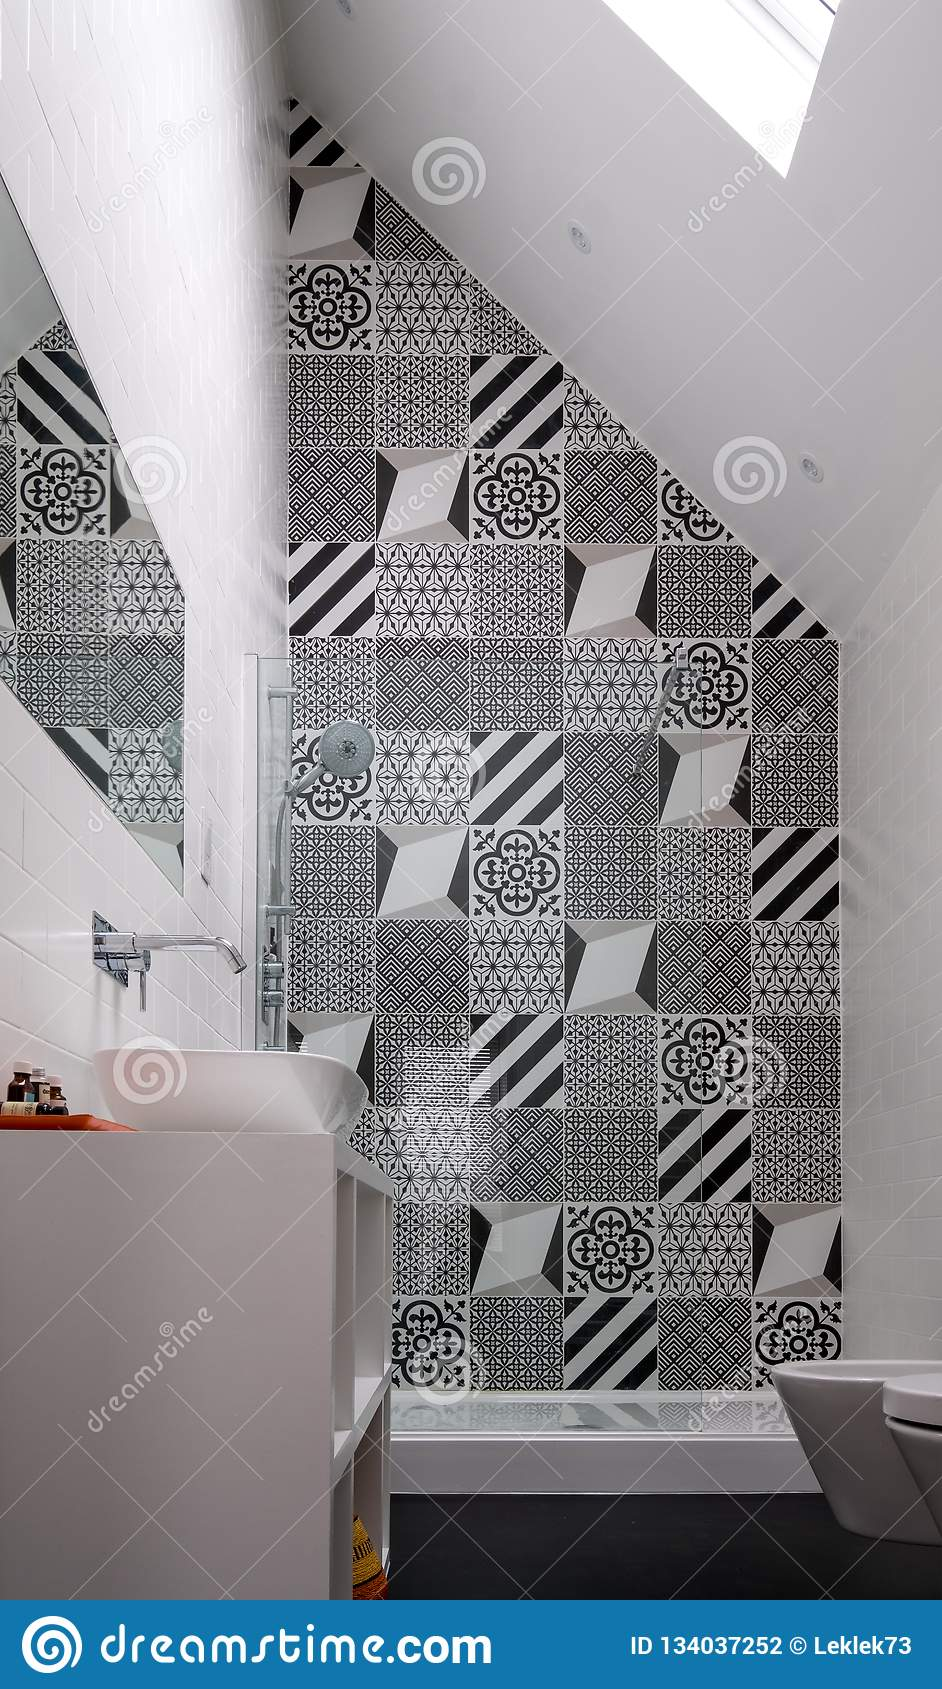 Bathroom With Shower Unit Toilet Bidet And Basin Unit With Black And White Monochrome Patchwork Tiles And High Ceiling Stock Photo Image Of Decor Patterned 134037252